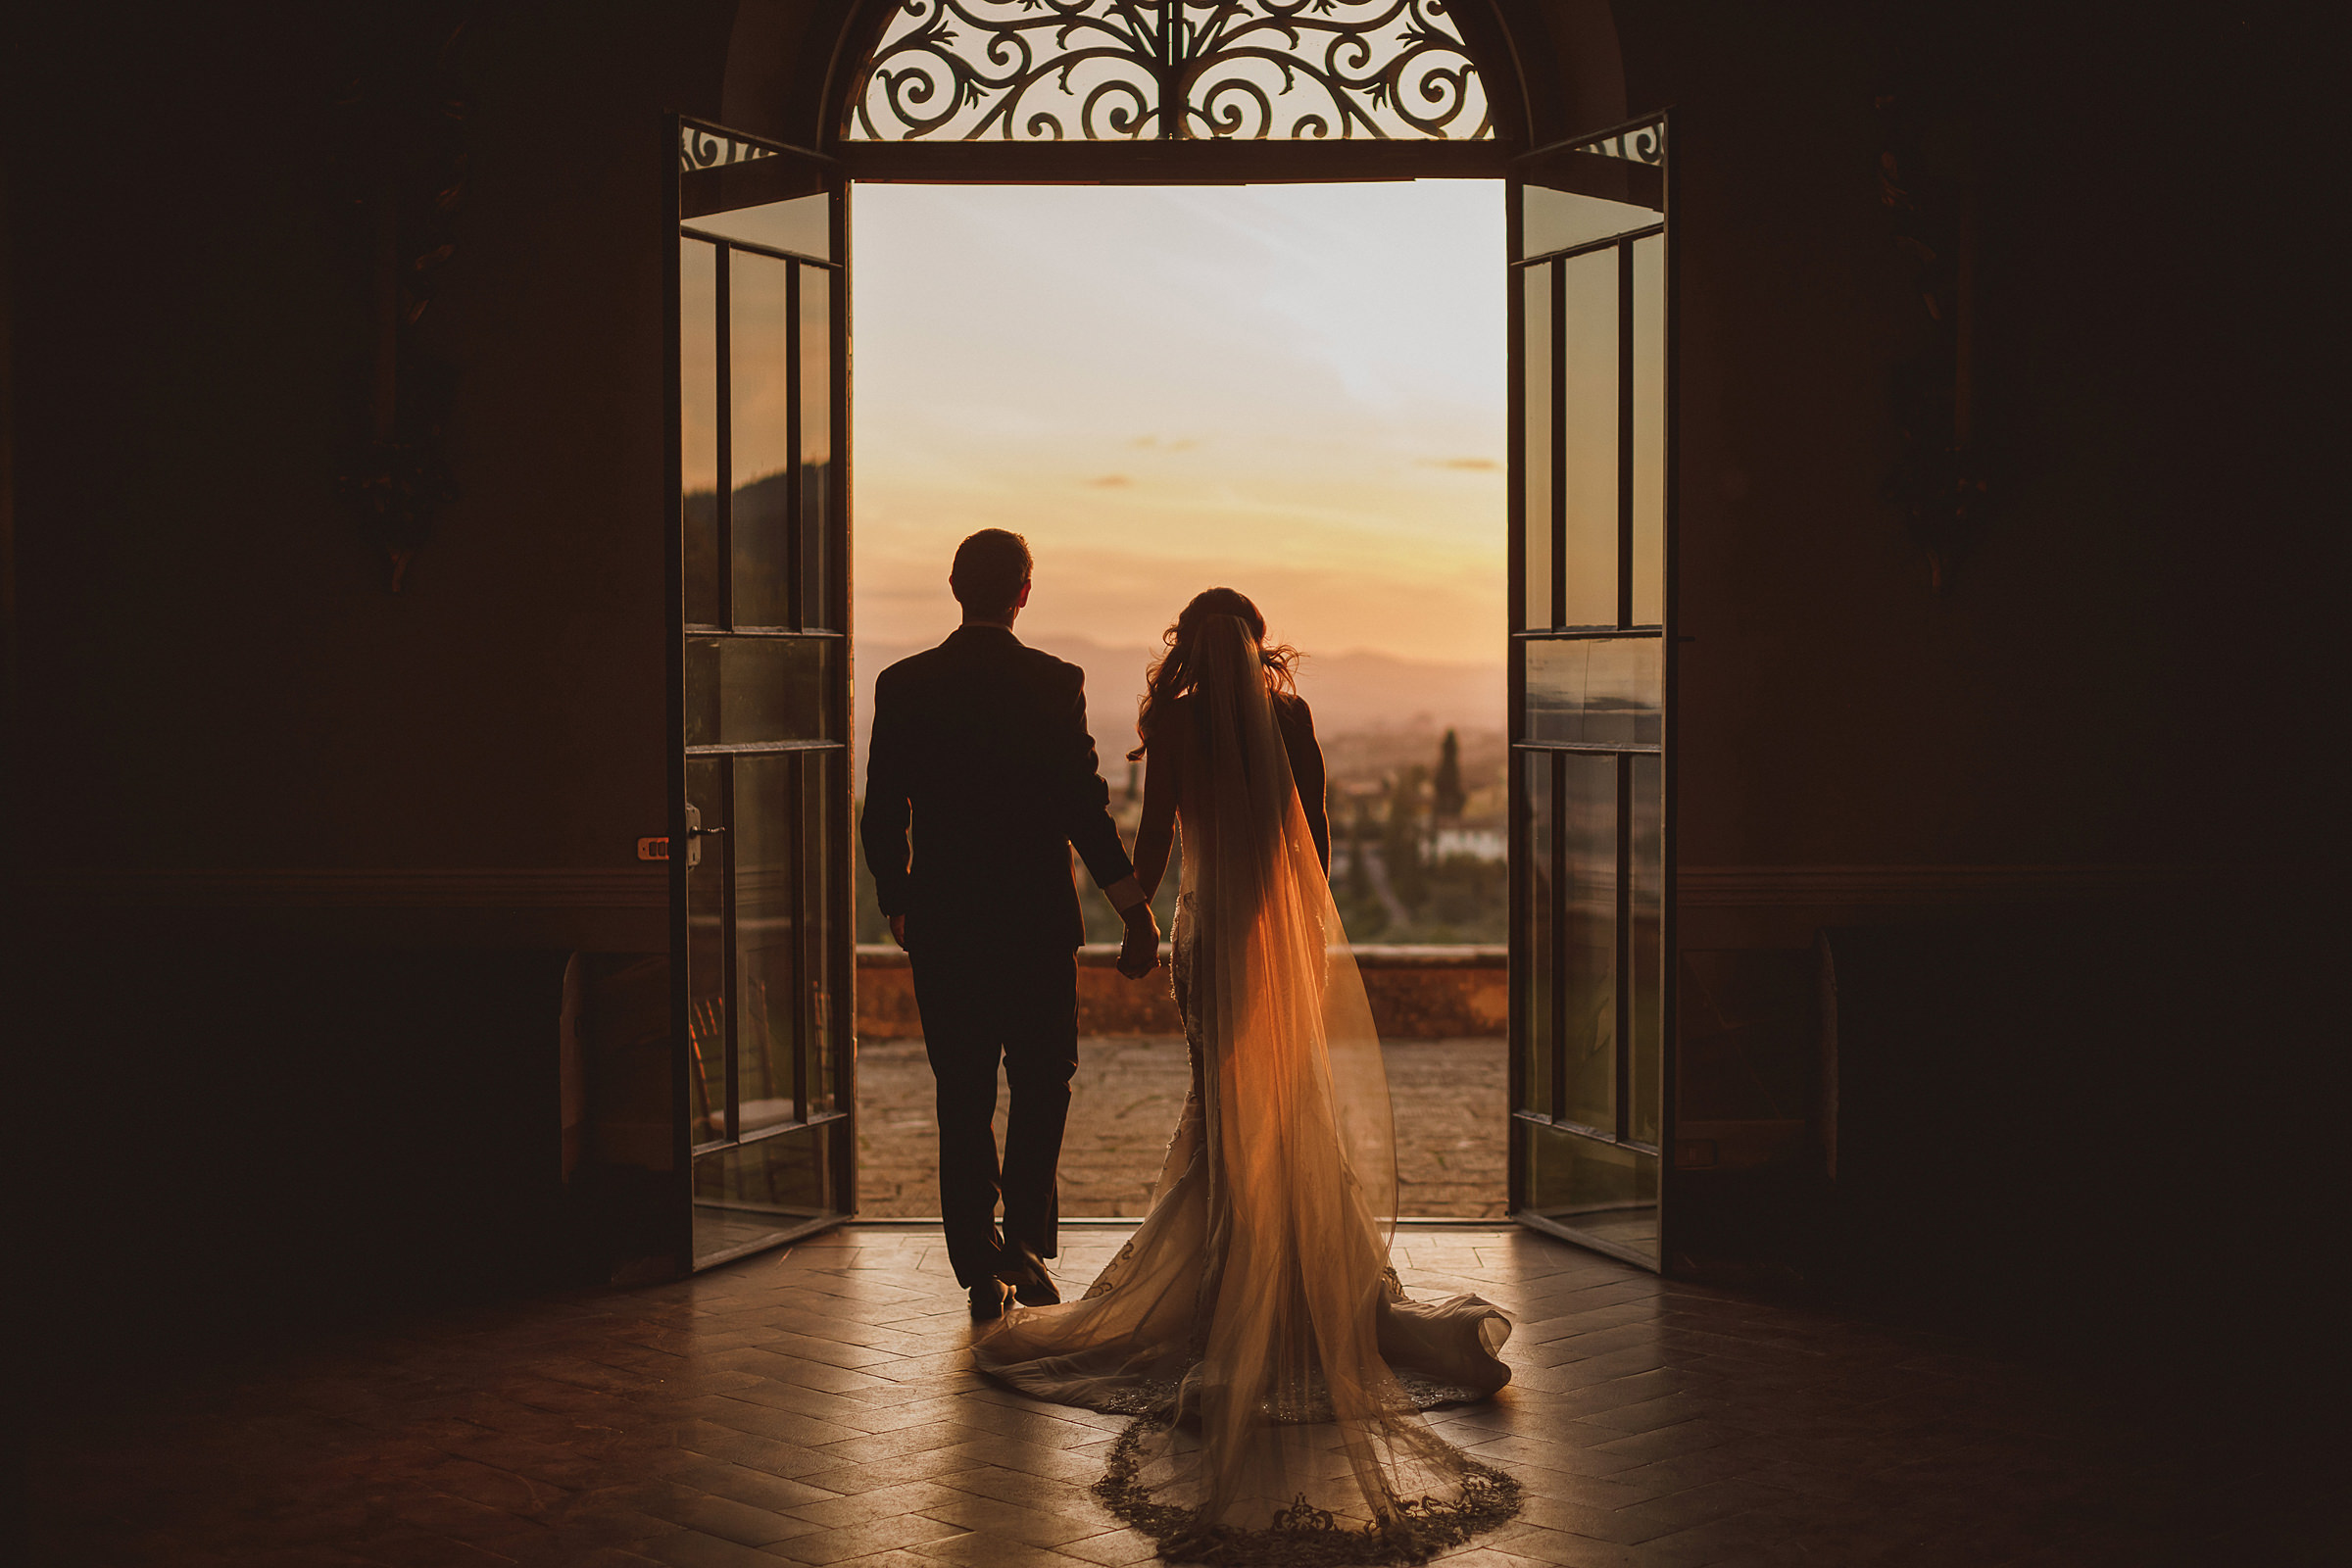 Couple in ornate doorway at sunset - photo by Ed Peers Photography